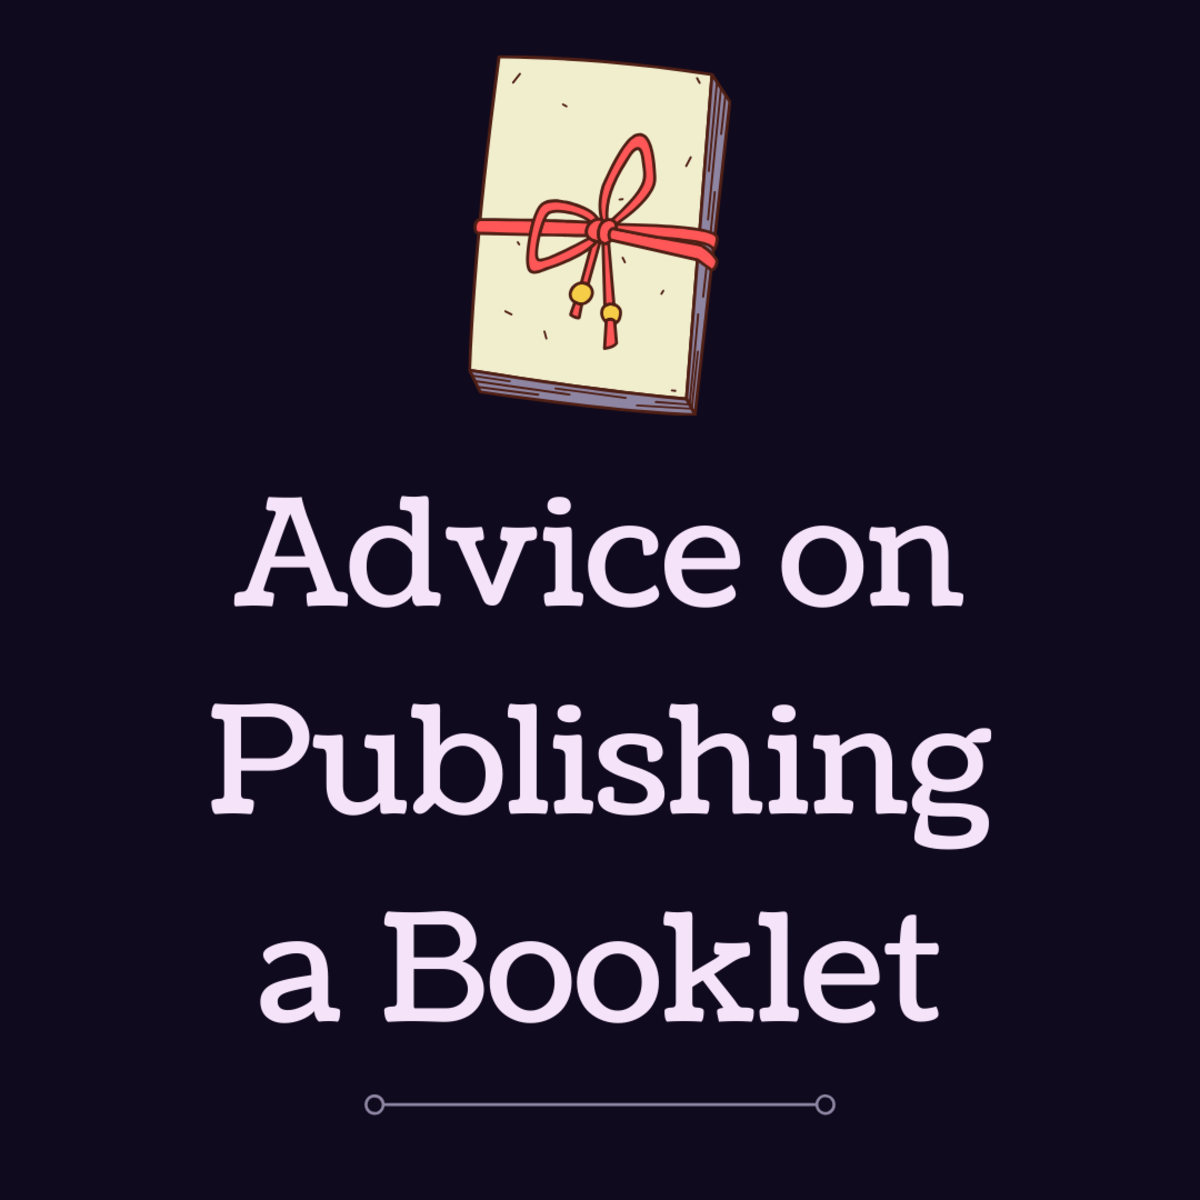 How to Publish a Small Book or Booklet